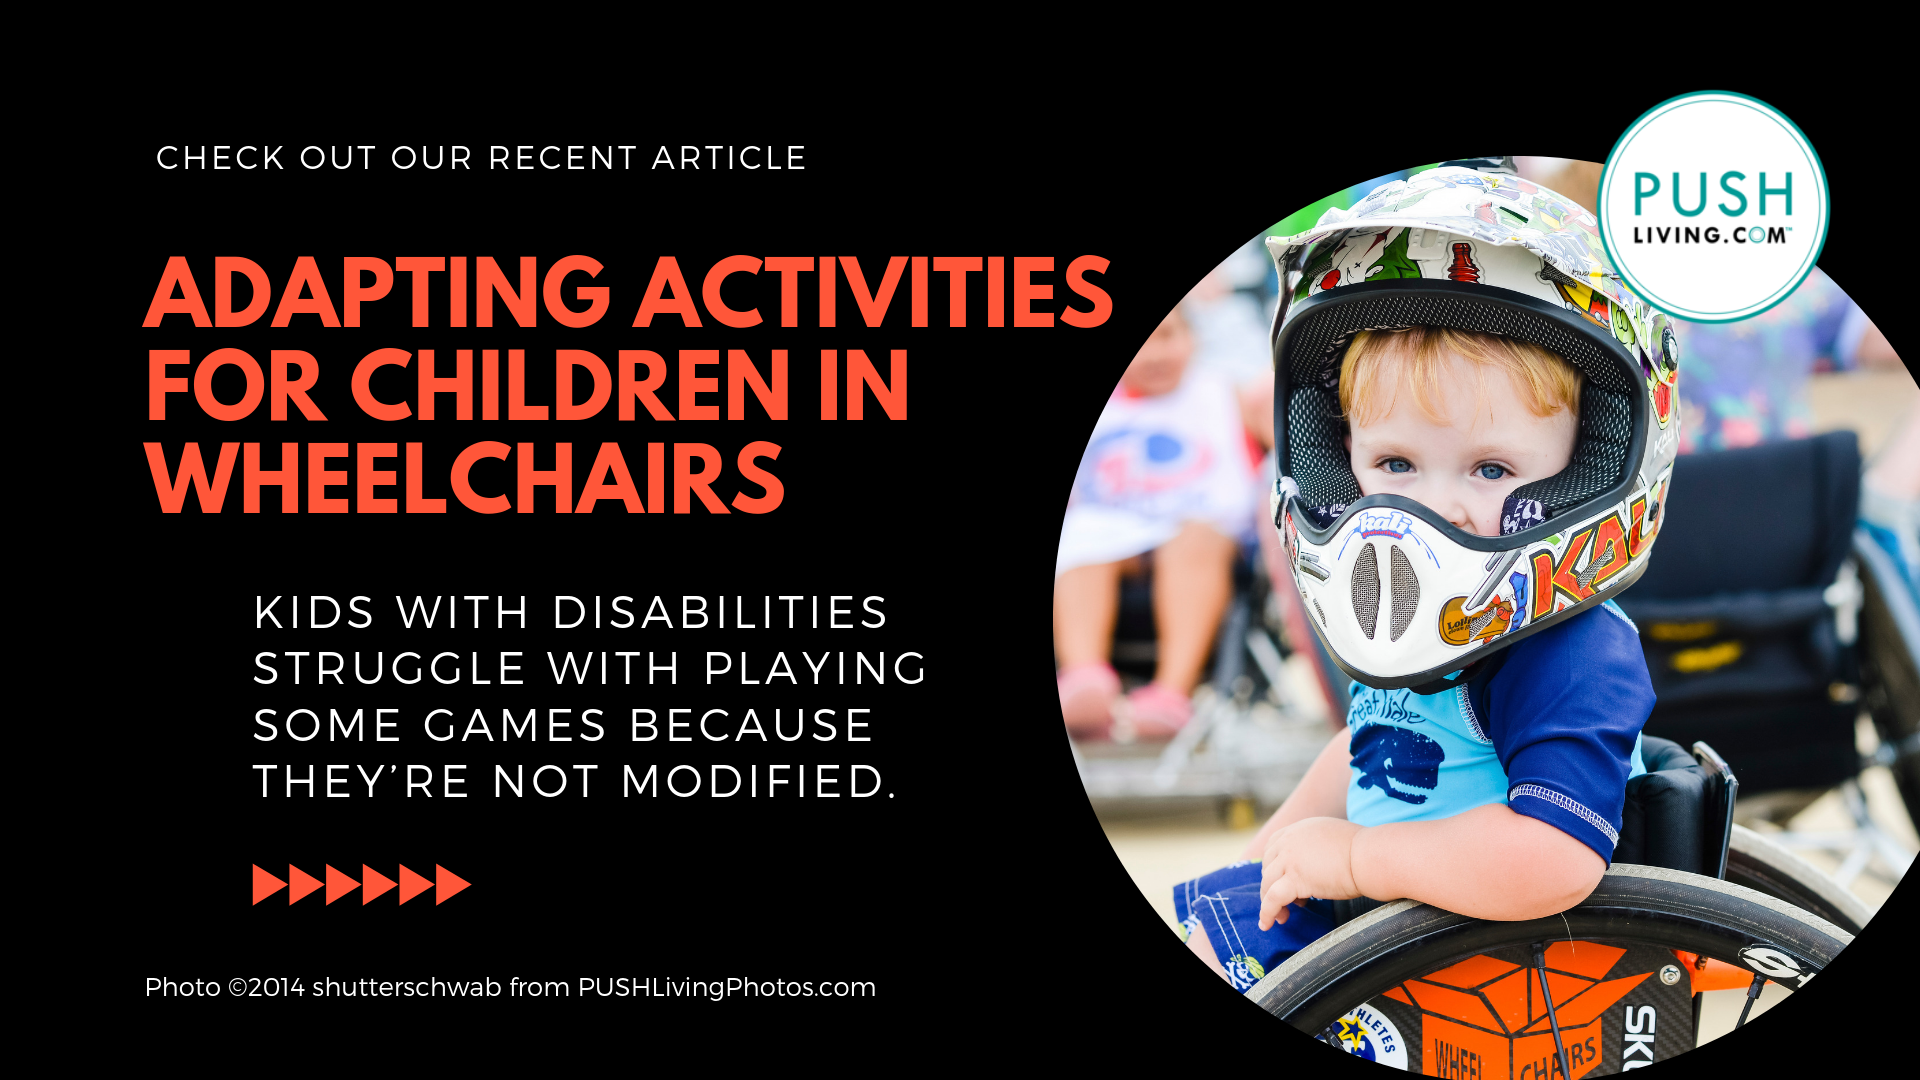 KidActivities COVER - Adapting Activities for Young Children in Wheelchairs